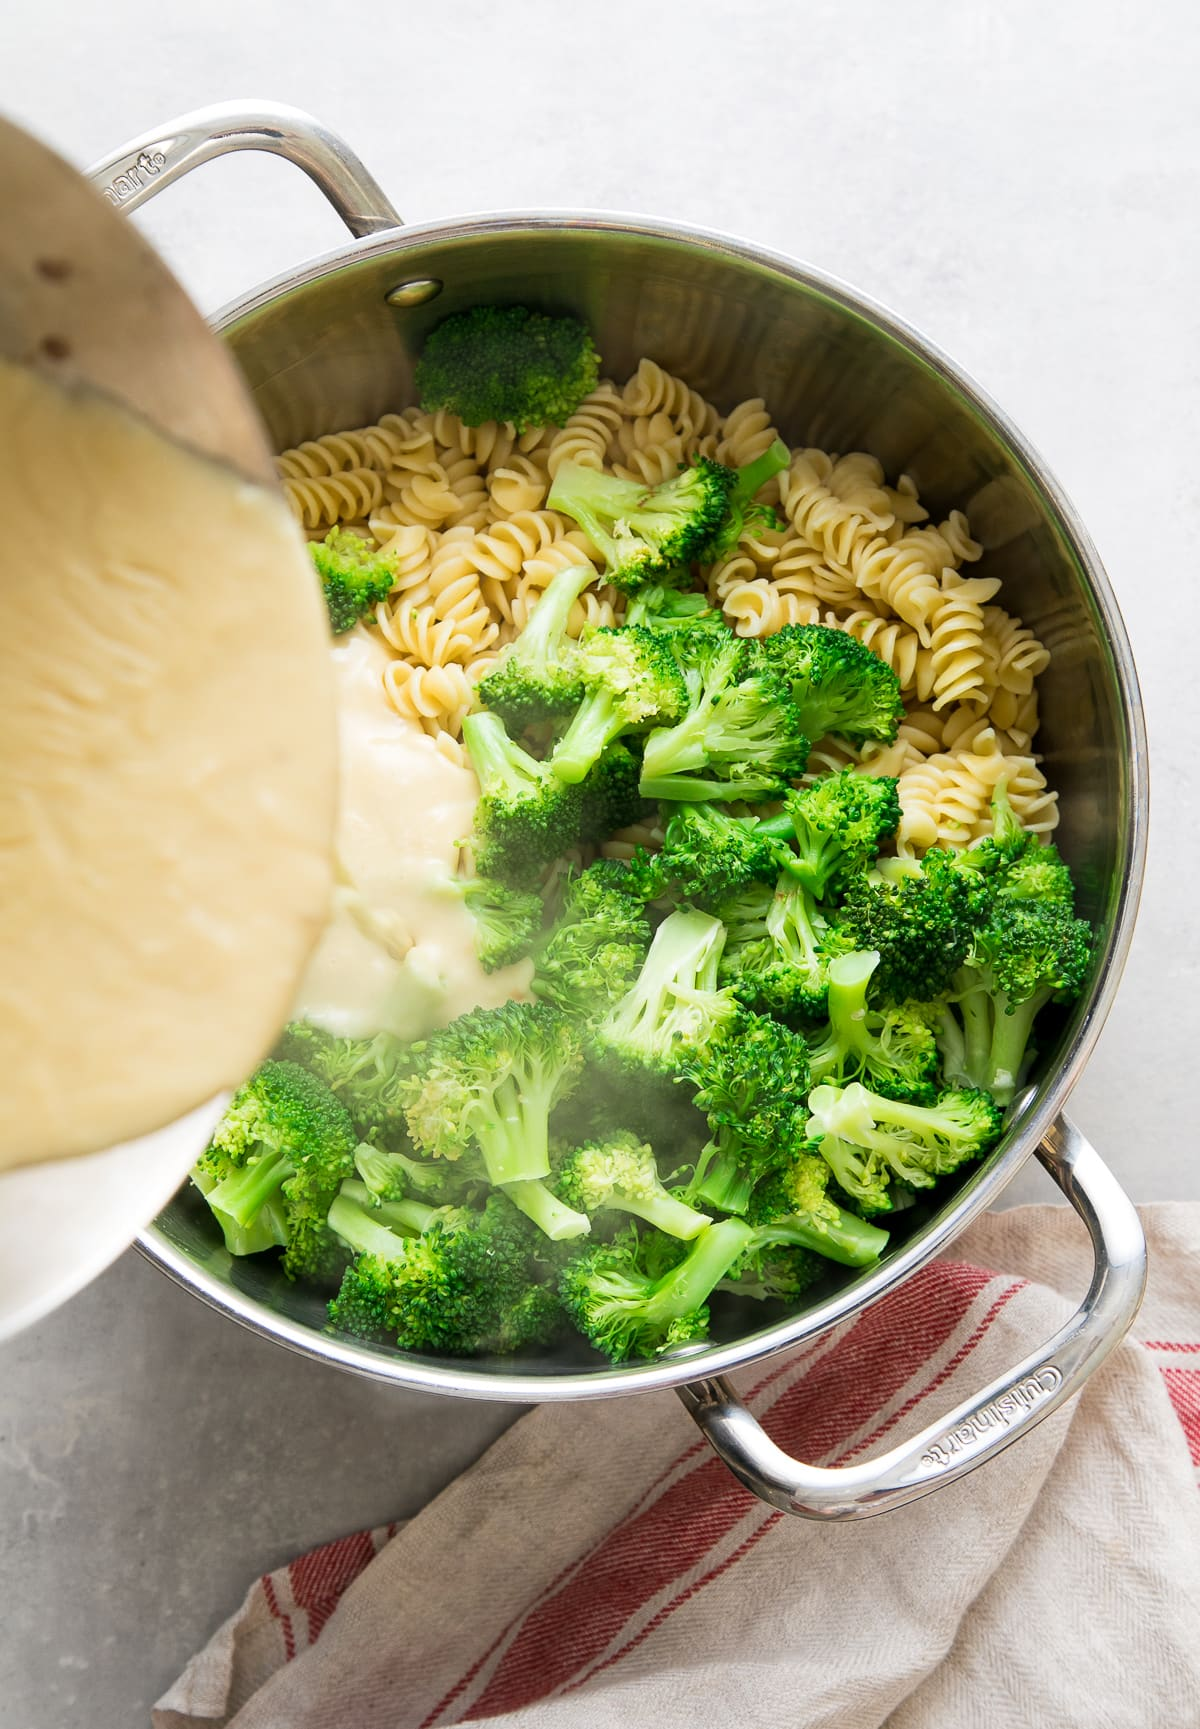 top down view showing the process of pouring creamy vegan sauce into pot of cooked pasta and broccoli.